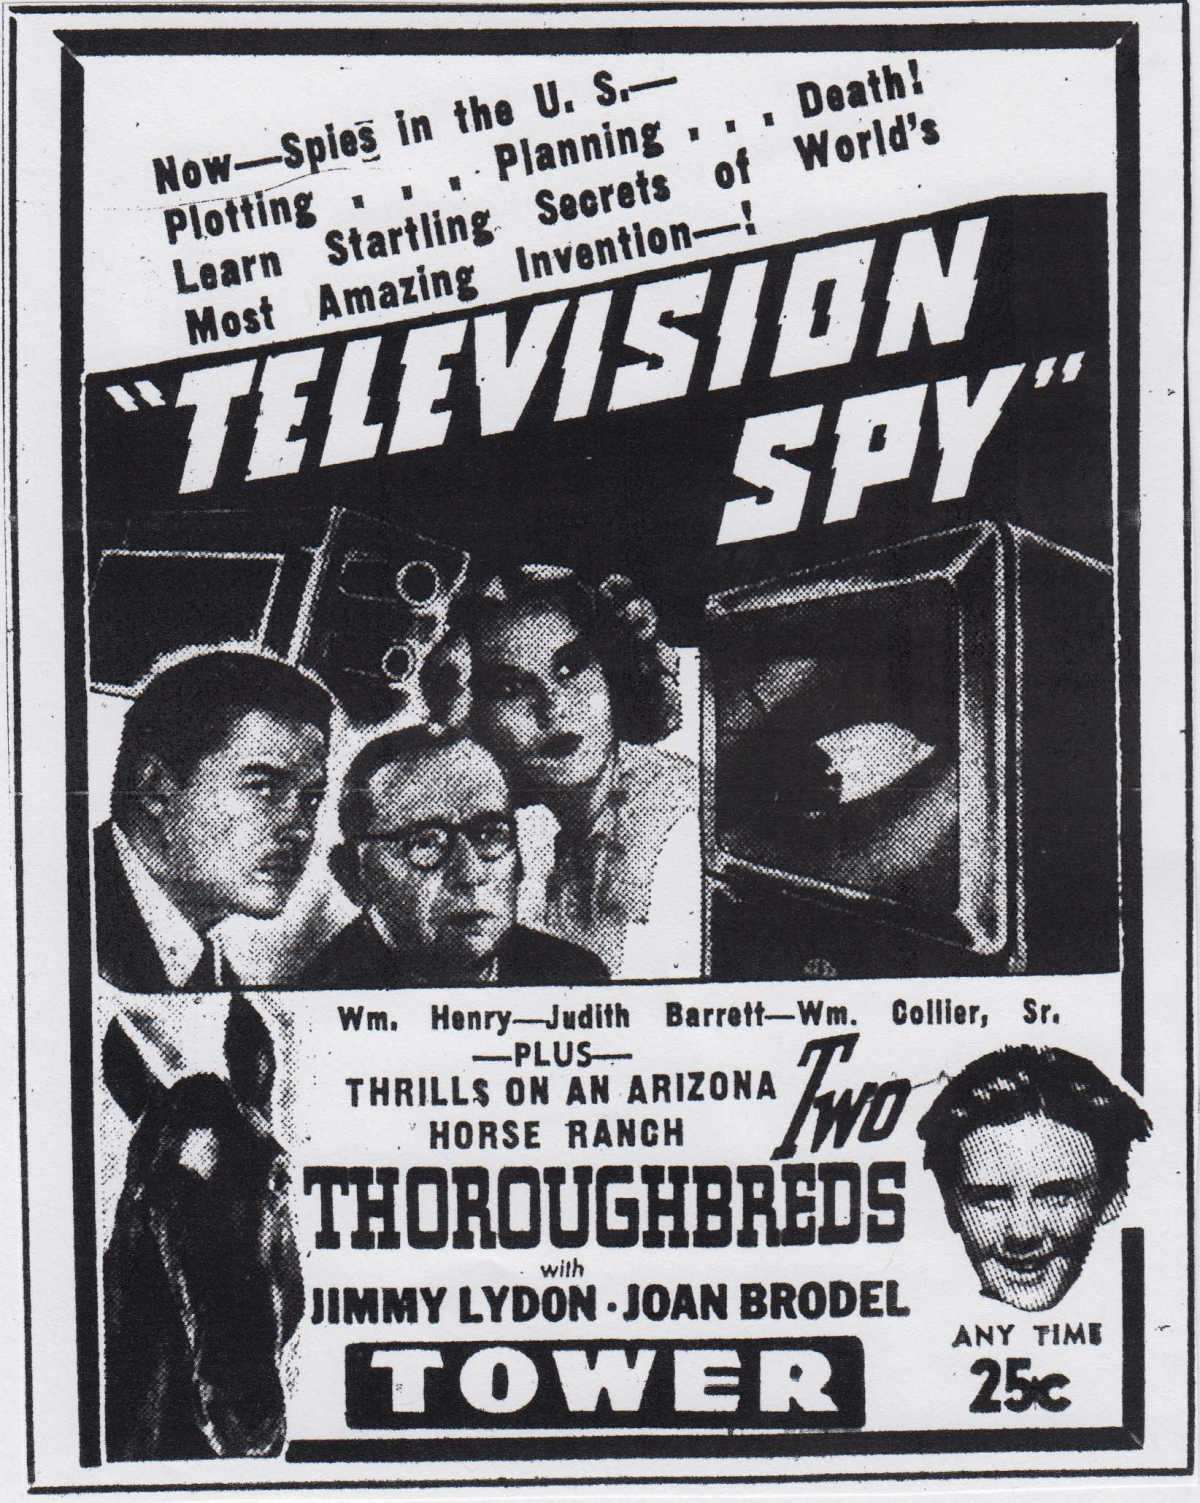 She says the government can spy on you through your television set. But is that the most insidious use of TVtechnology?